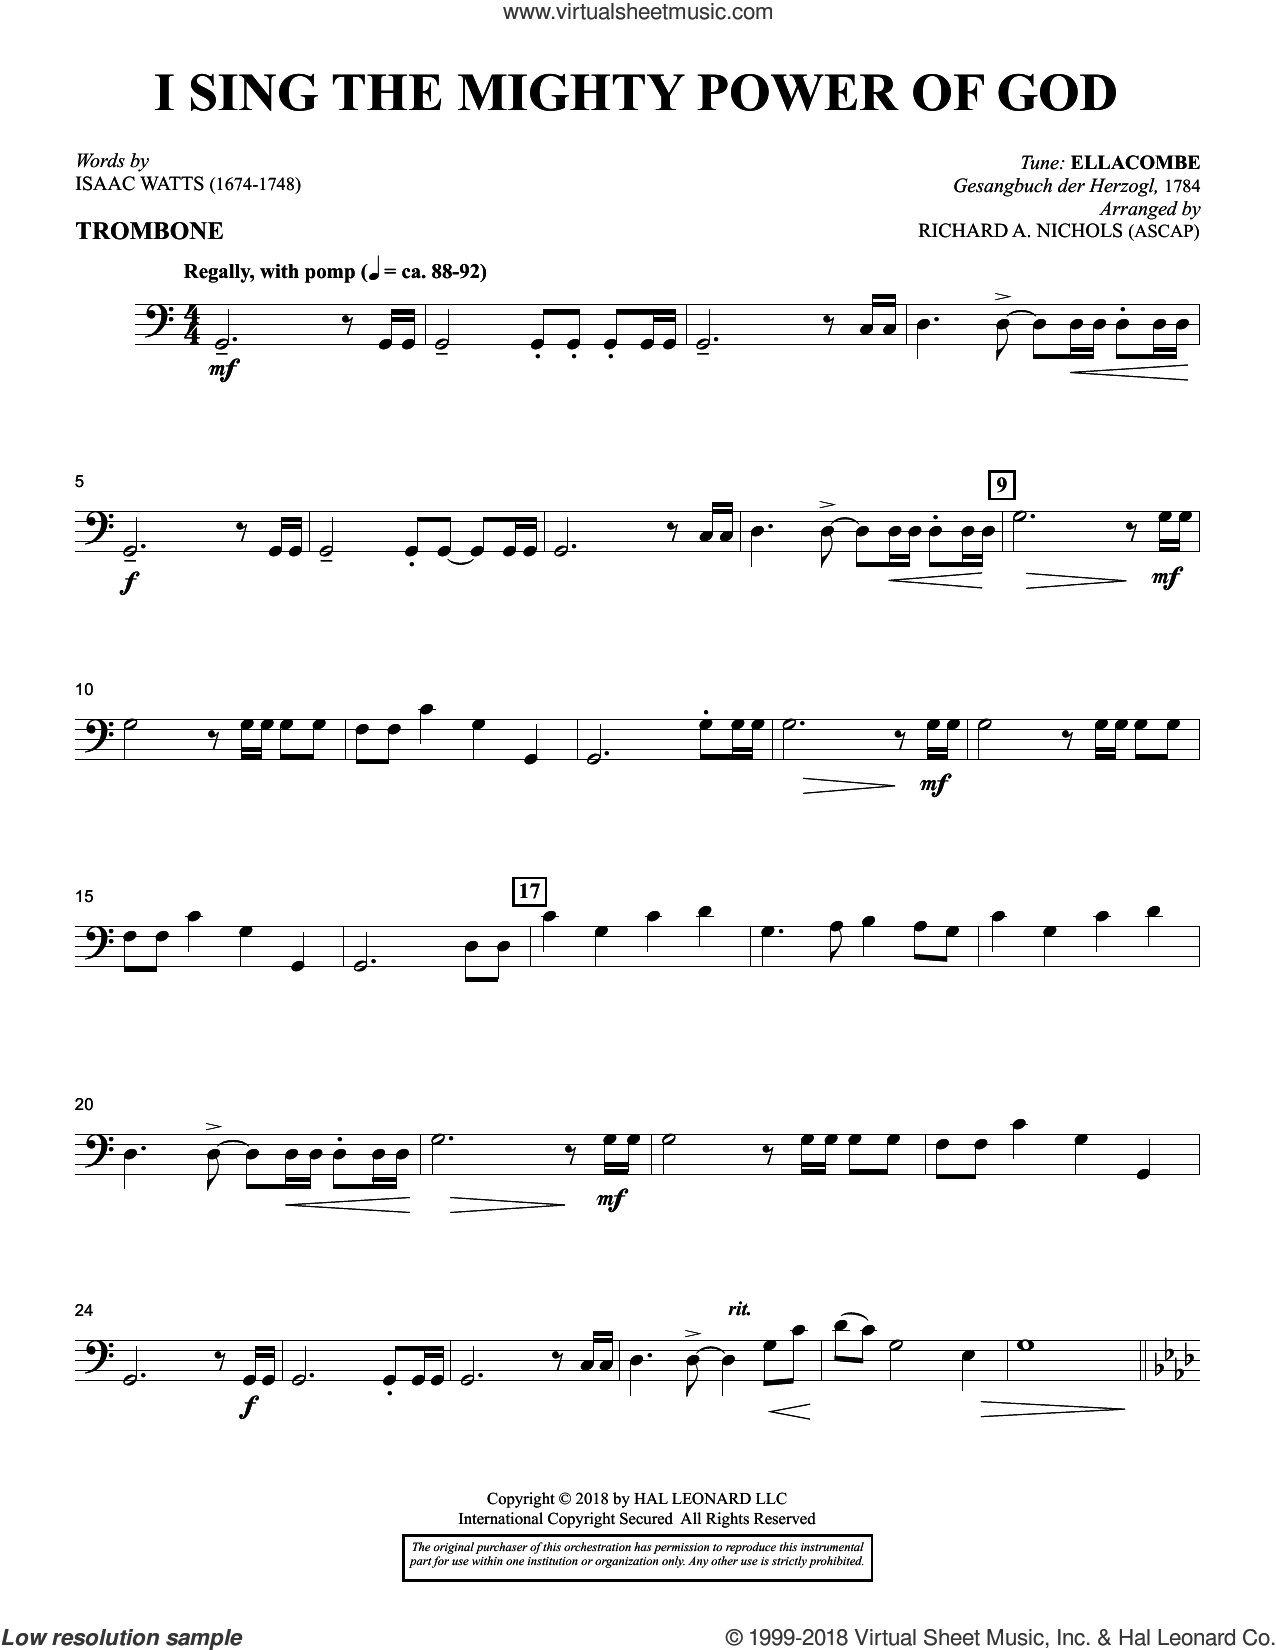 I Sing the Mighty Power of God (arr. Richard Nichols) sheet music for orchestra/band (trombone) by Isaac Watts and Richard A. Nichols, intermediate skill level